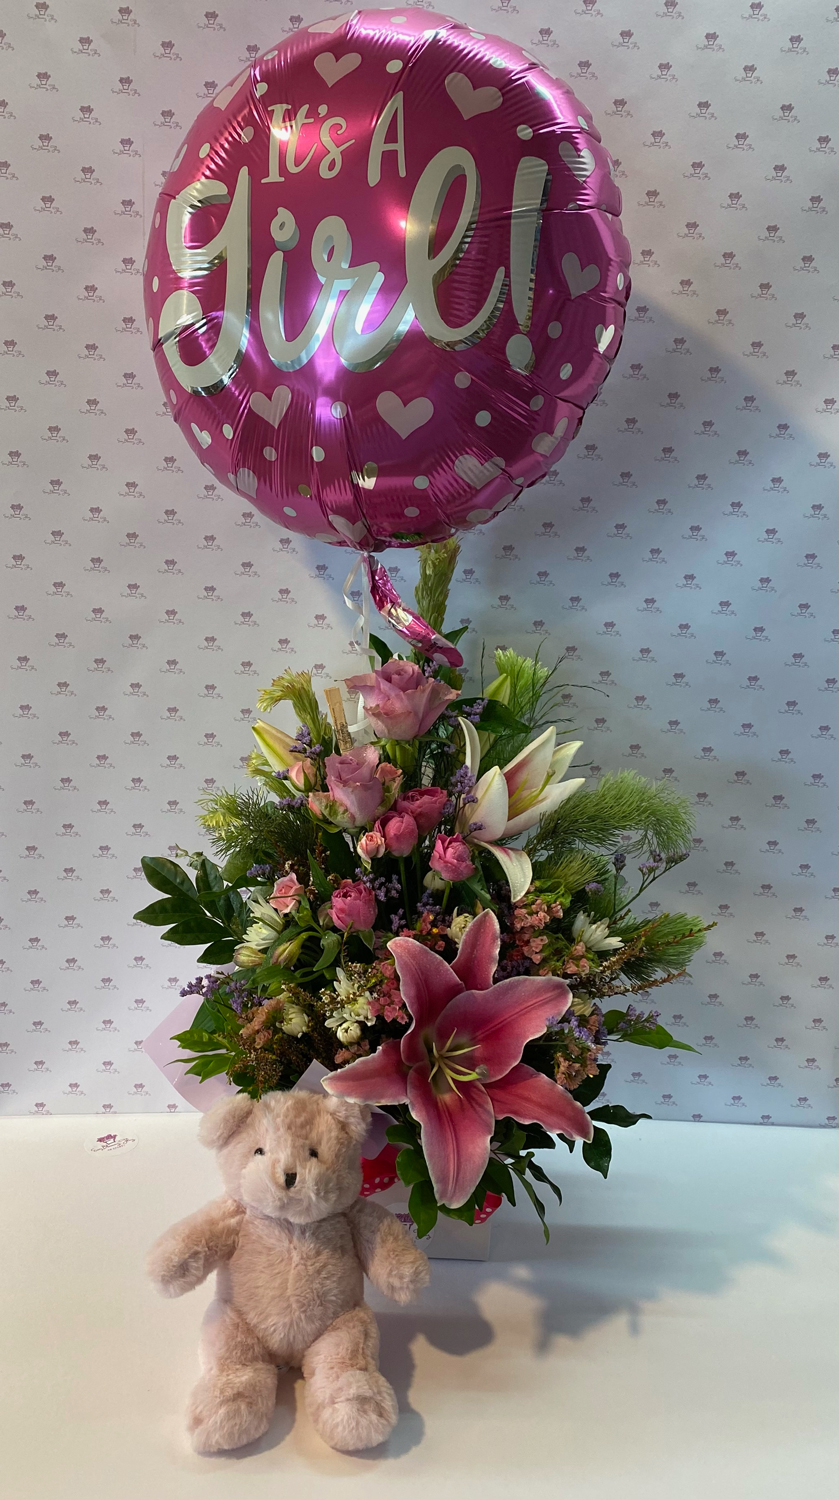 A beautifully crafted pinks arrangement, helium balloon and the softest teddy bear to welcome a precious little newborn.